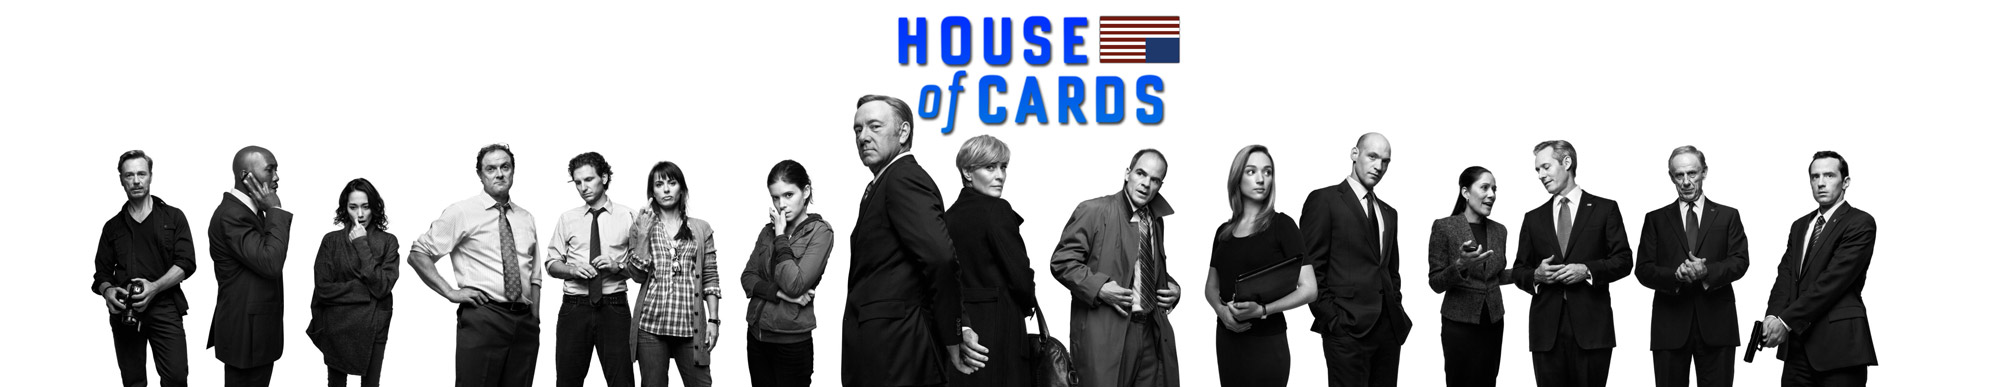 House Of Cards Marketing